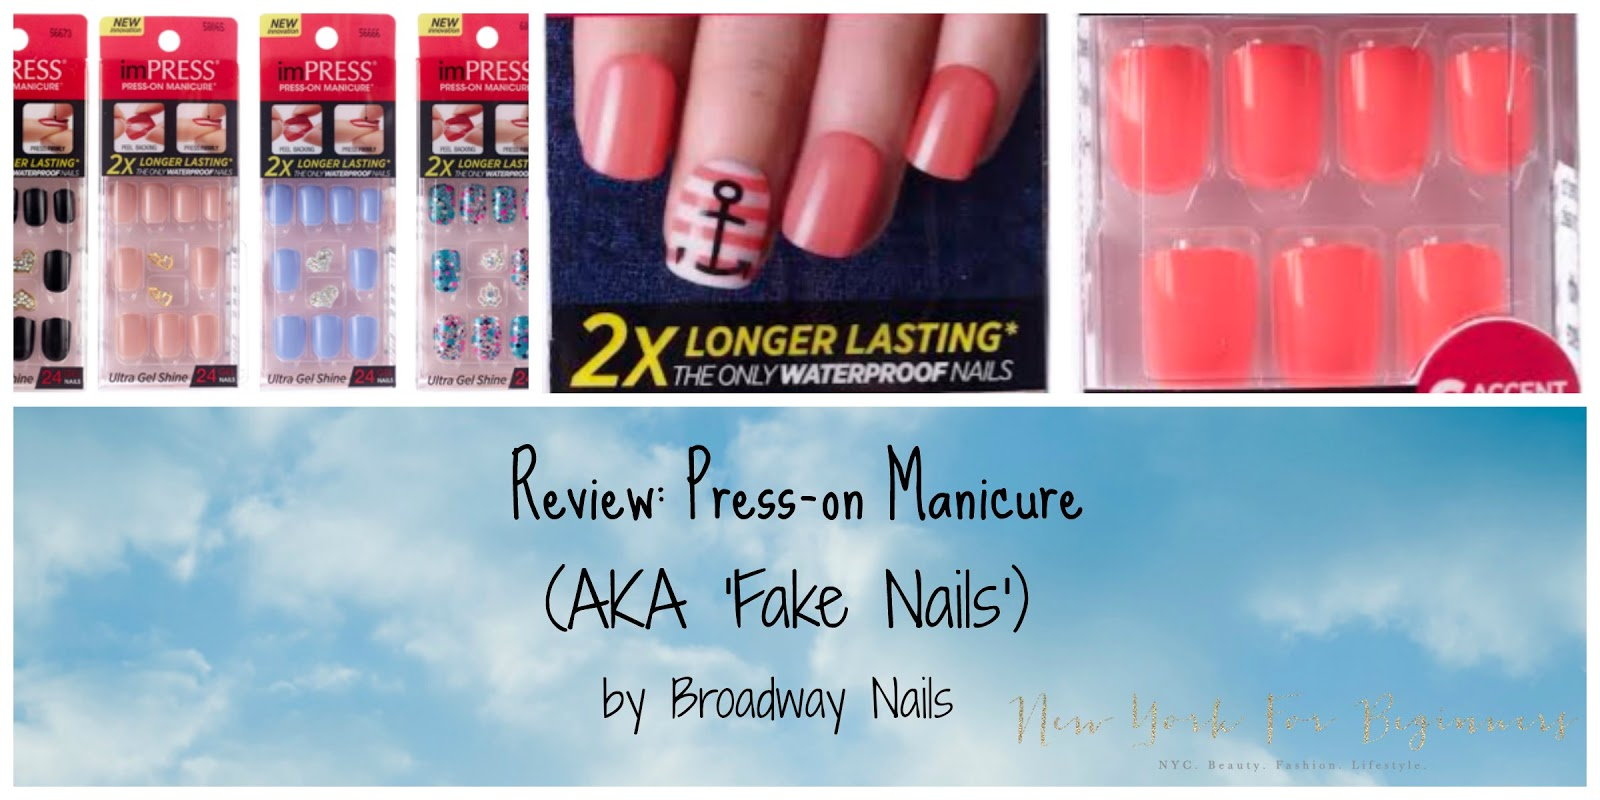 Why I got hooked up on fake press-on nails by Kiss - New York For ...